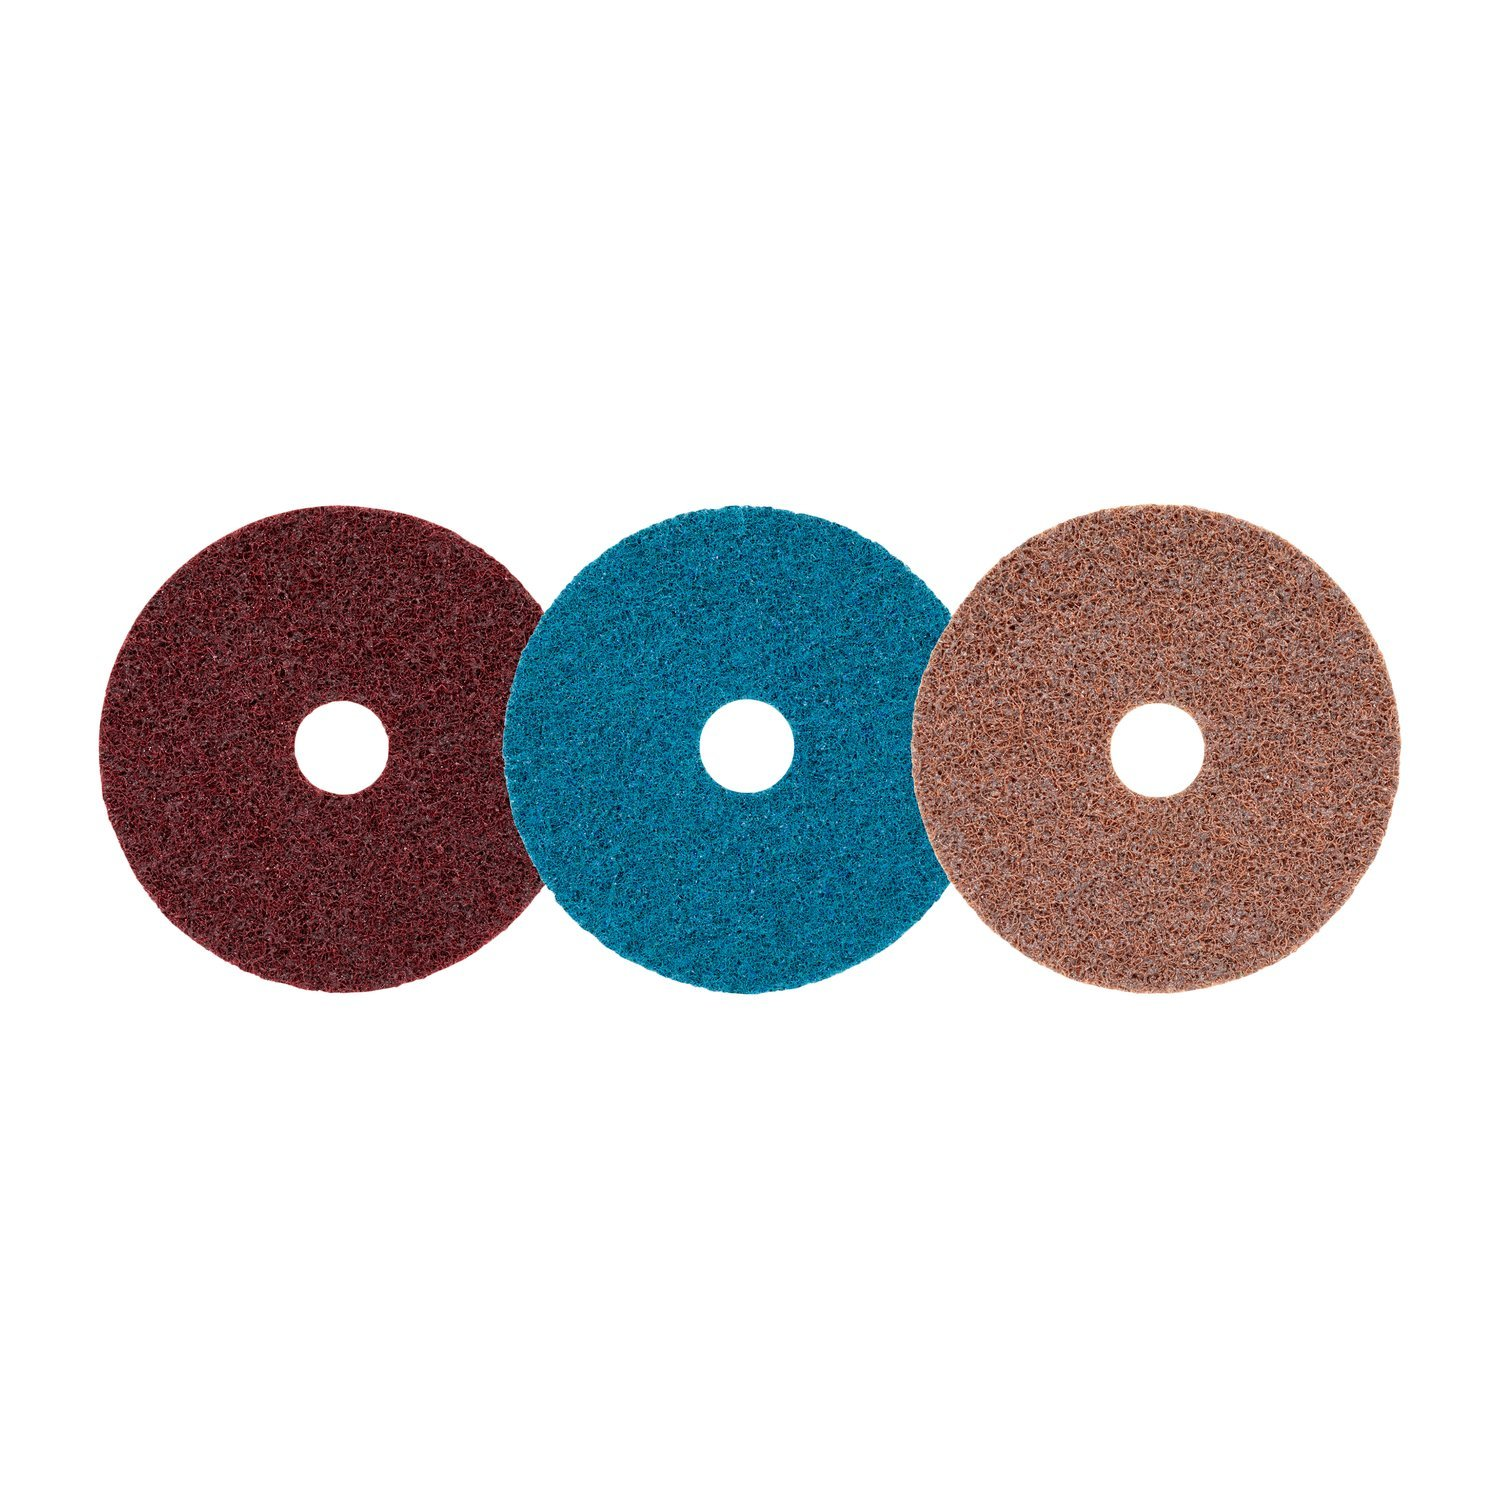 27 x NH A MED 27 Diameter Pack of 2 27 x NH A MED 3M Aluminum Oxide Abrasive Grit Pack of 2 Other Backing 27 Diameter Scotch-Brite 16559 Surface Conditioning Disc